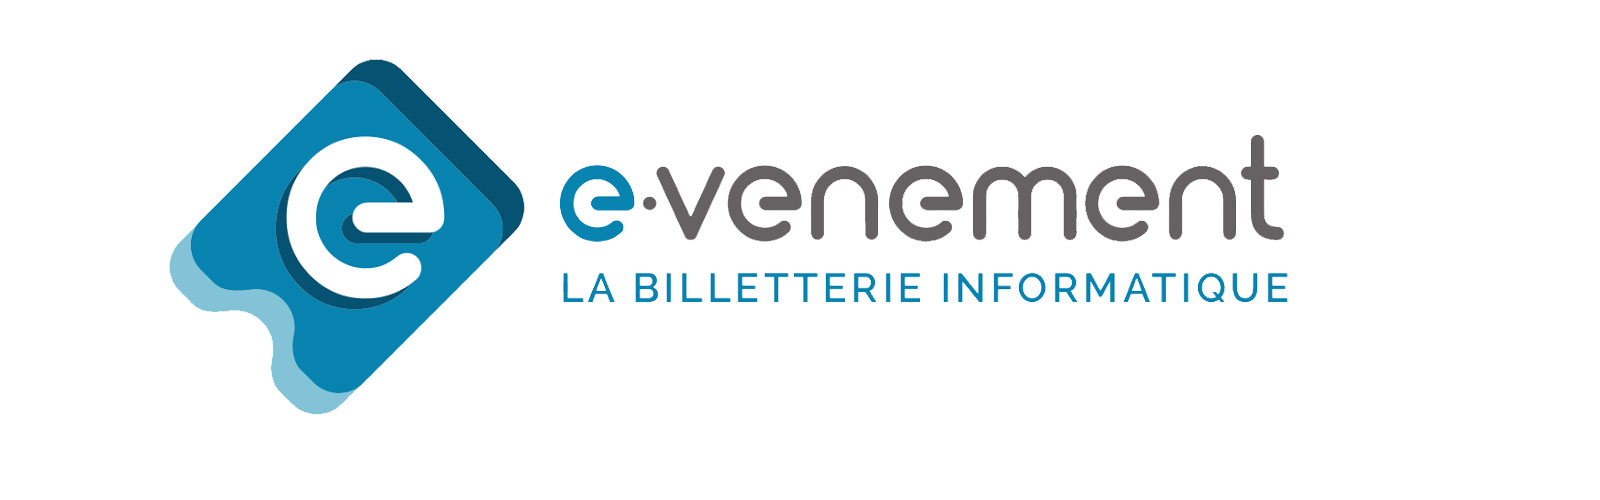 e-venement-interview